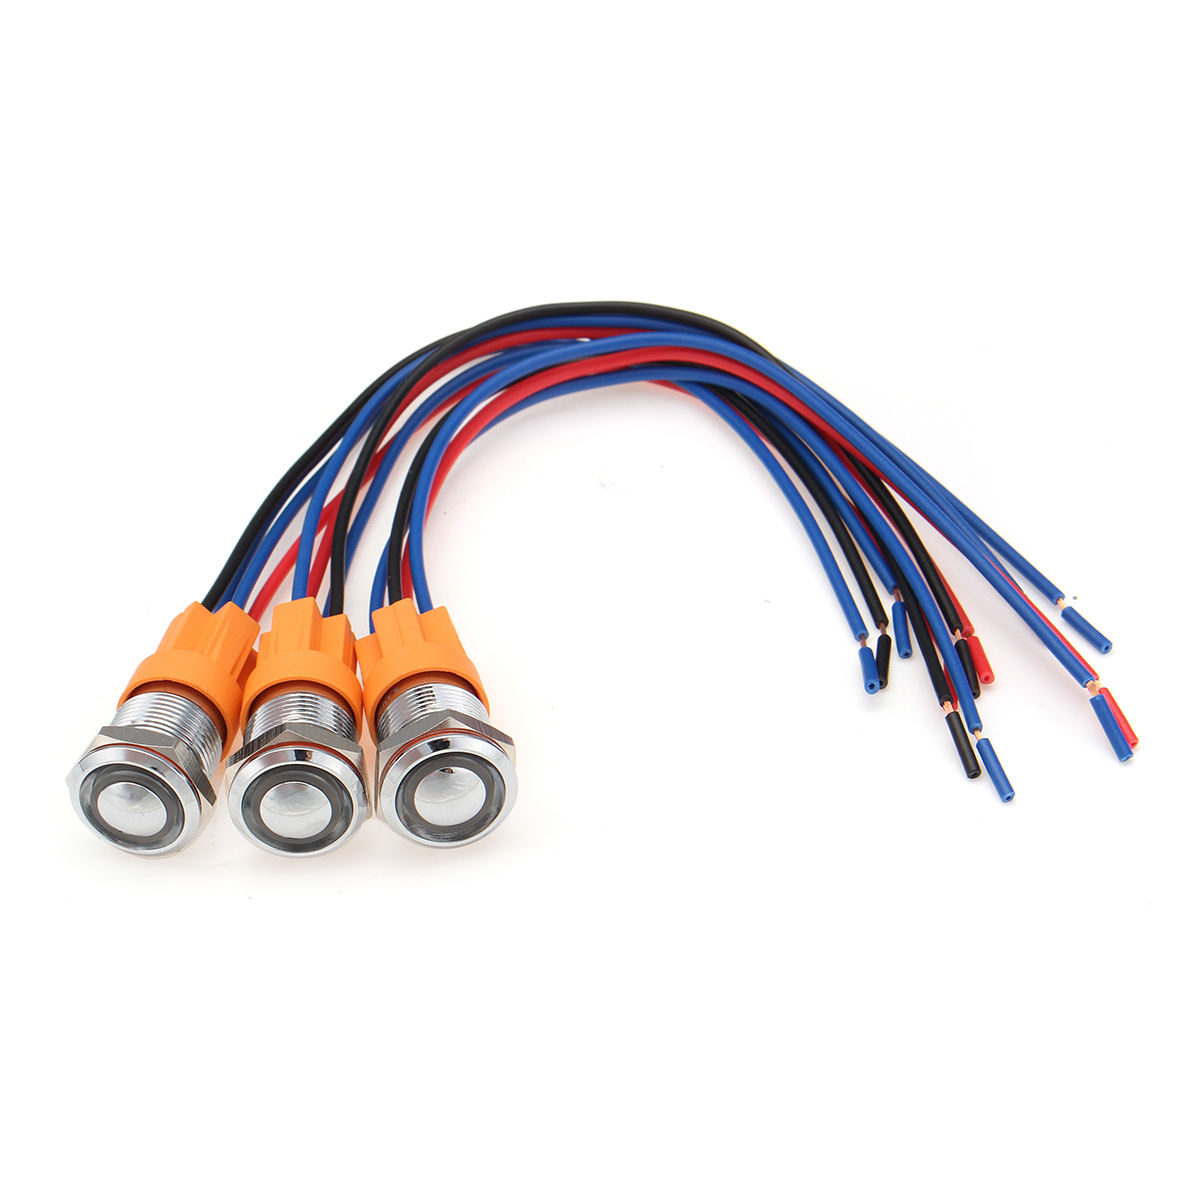 12v 24v 4pin Self Locking Switch 12mm Metal On Off Led Push Button Diagram Wiring Harness Waterproof In Switches From Lights Lighting